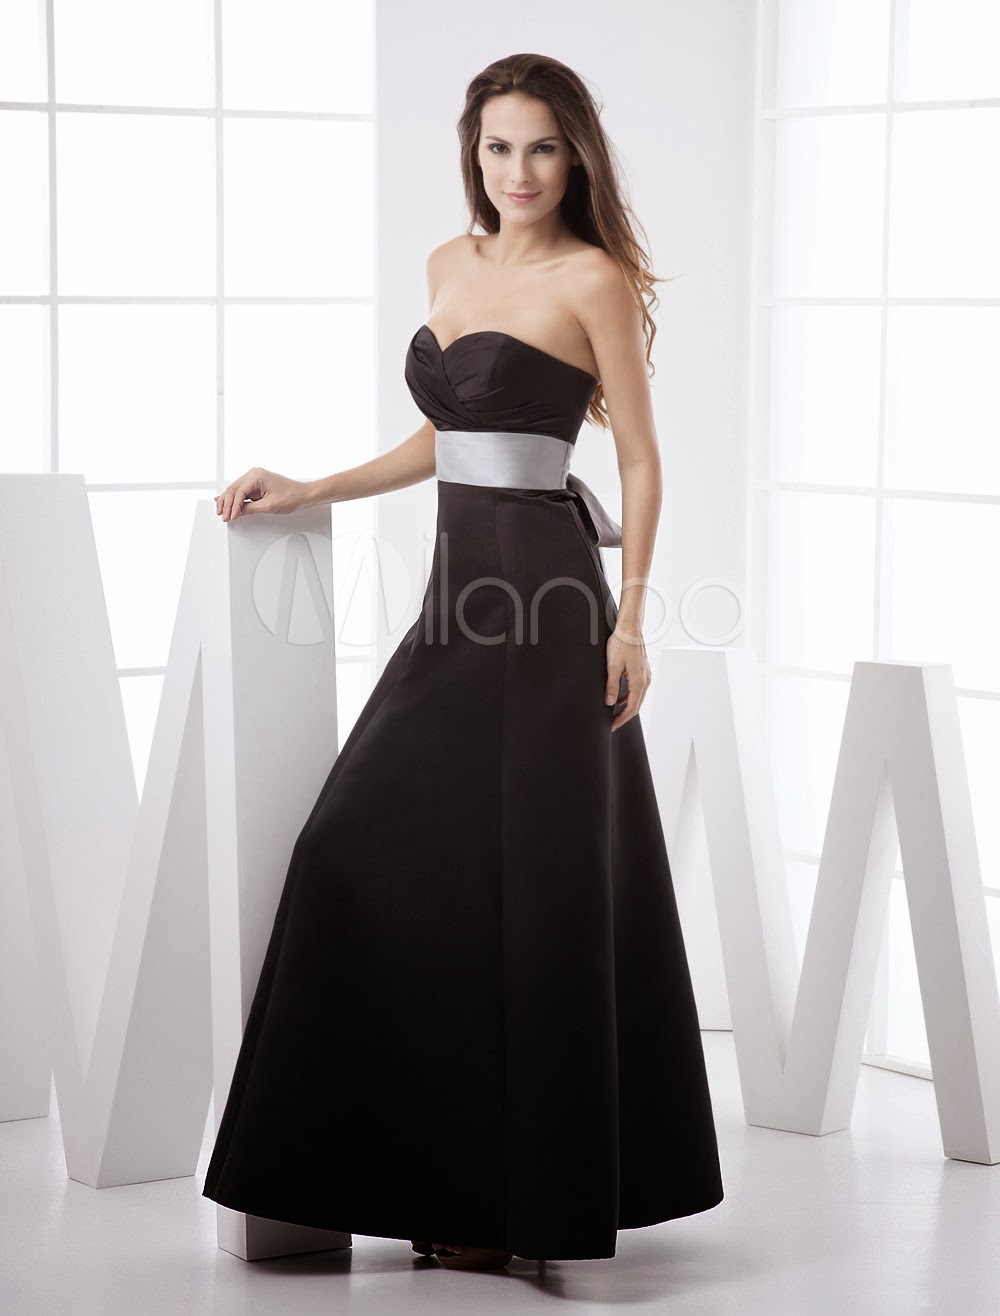 China Wholesale Dresses - Black Strapless Sweetheart Sash Floor Length Satin Bridesmaid Dress